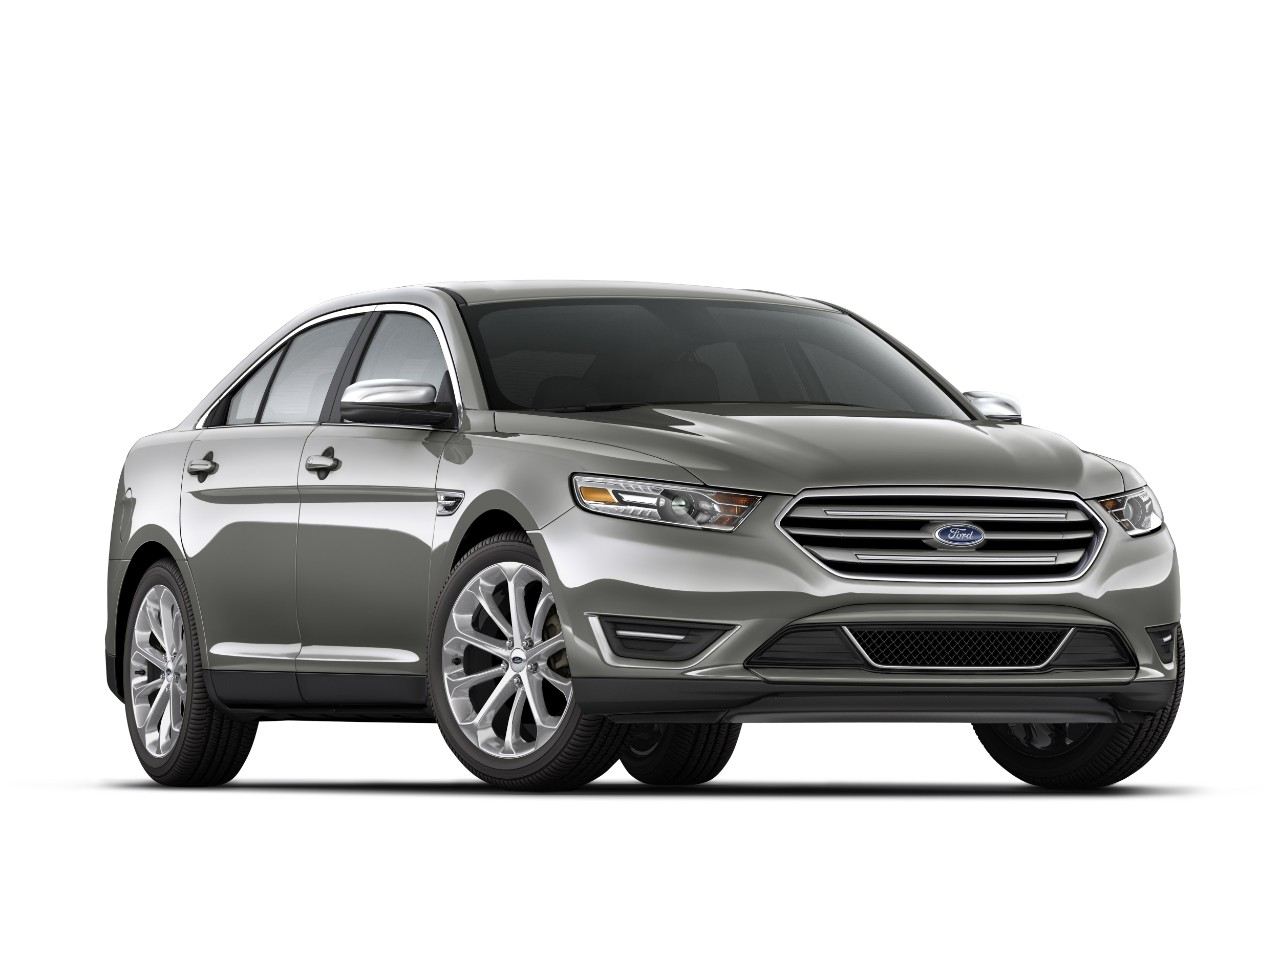 2016 Ford Taurus Quality Review The Car Connection